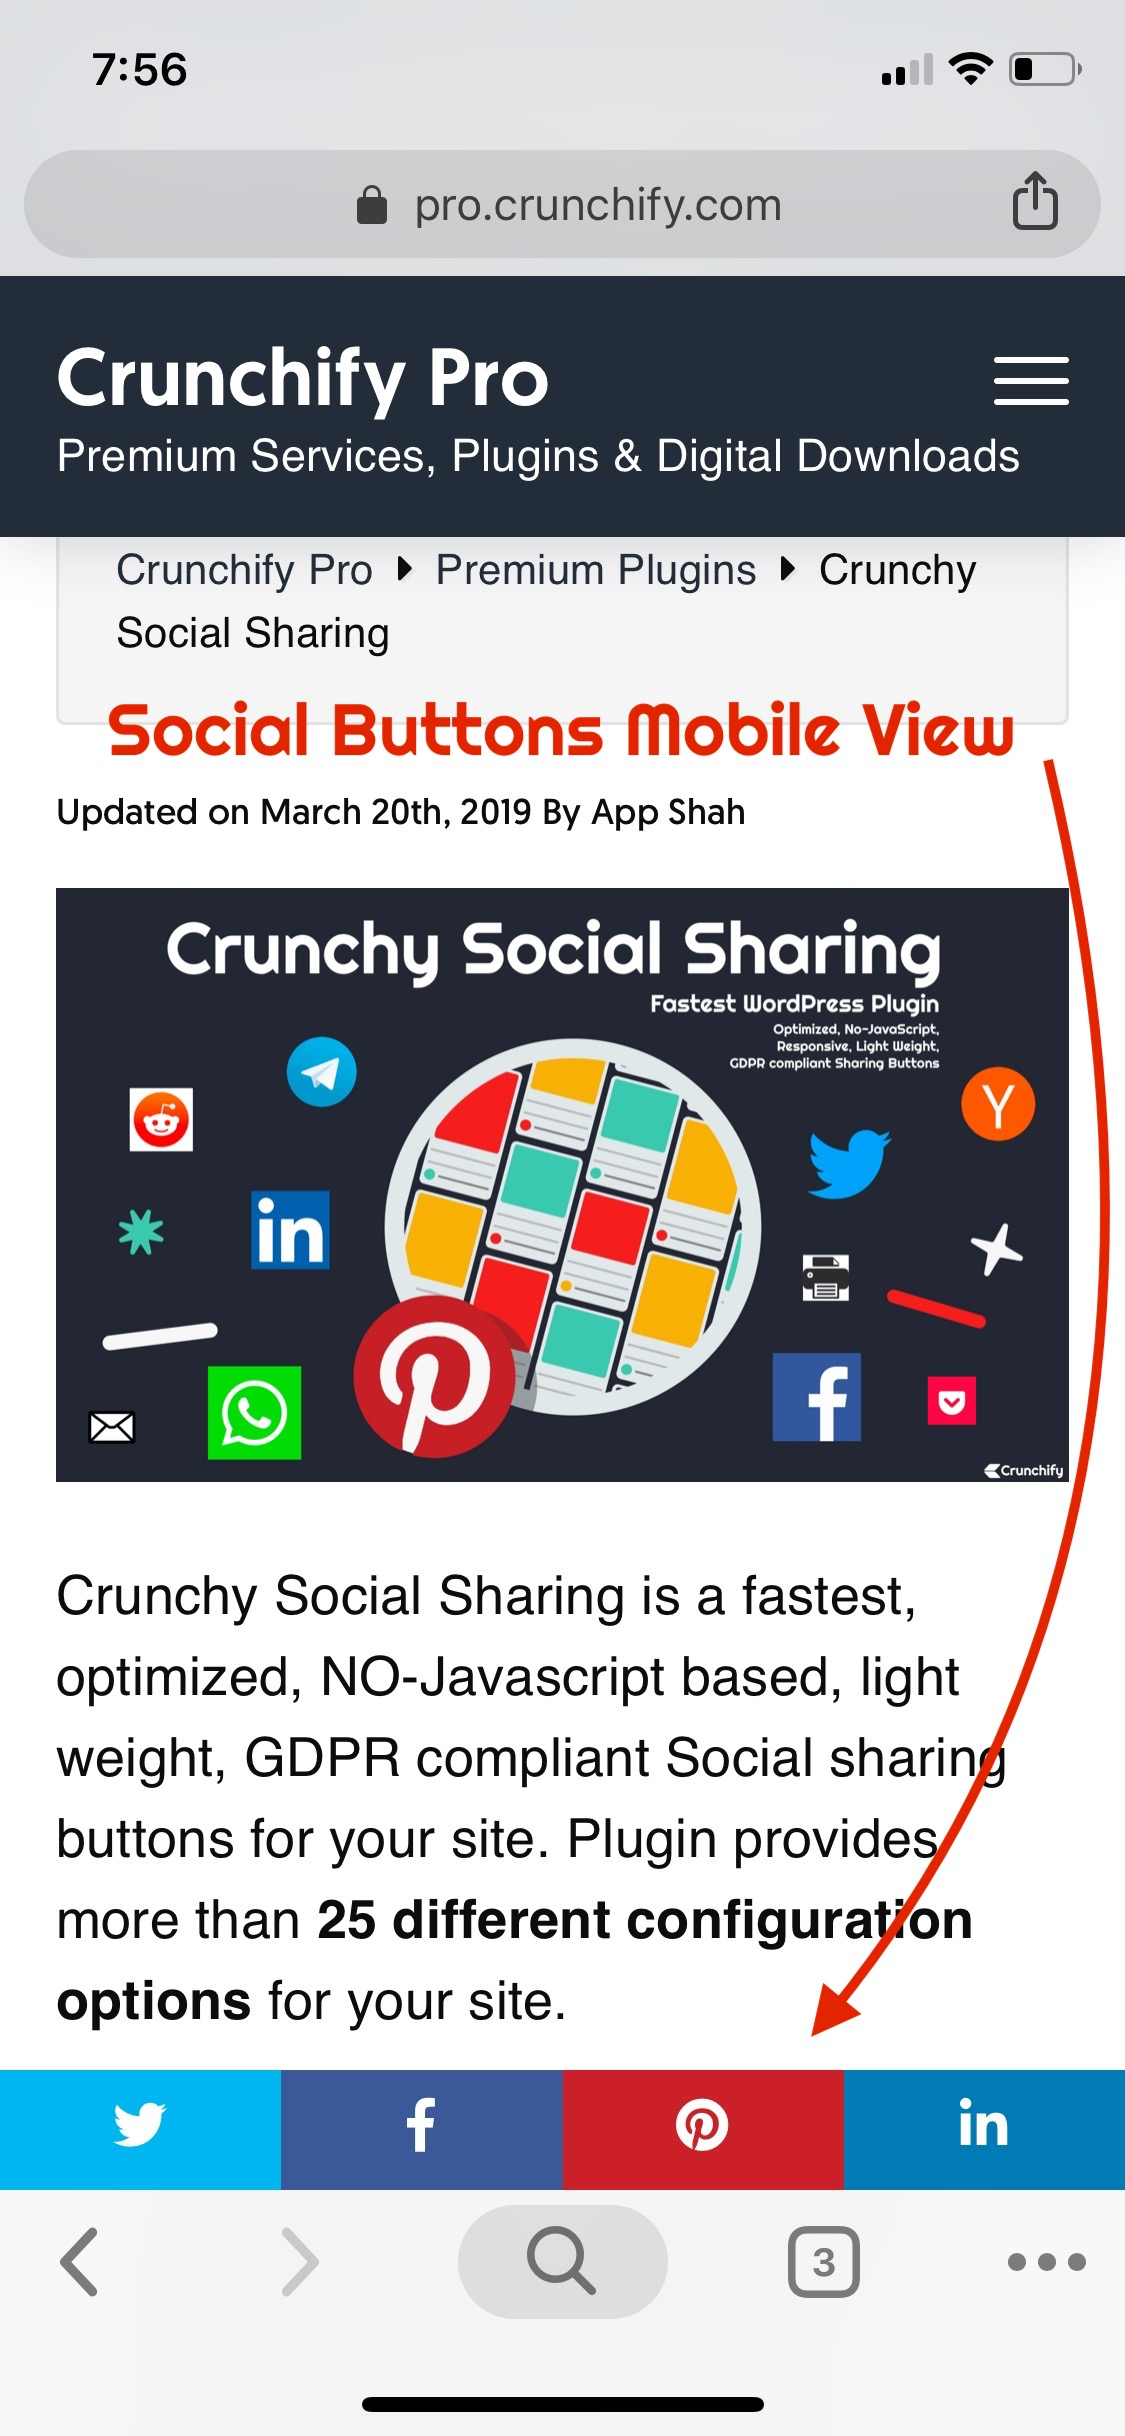 Crunchy Sharing - iPhoneX - Mobile Layout